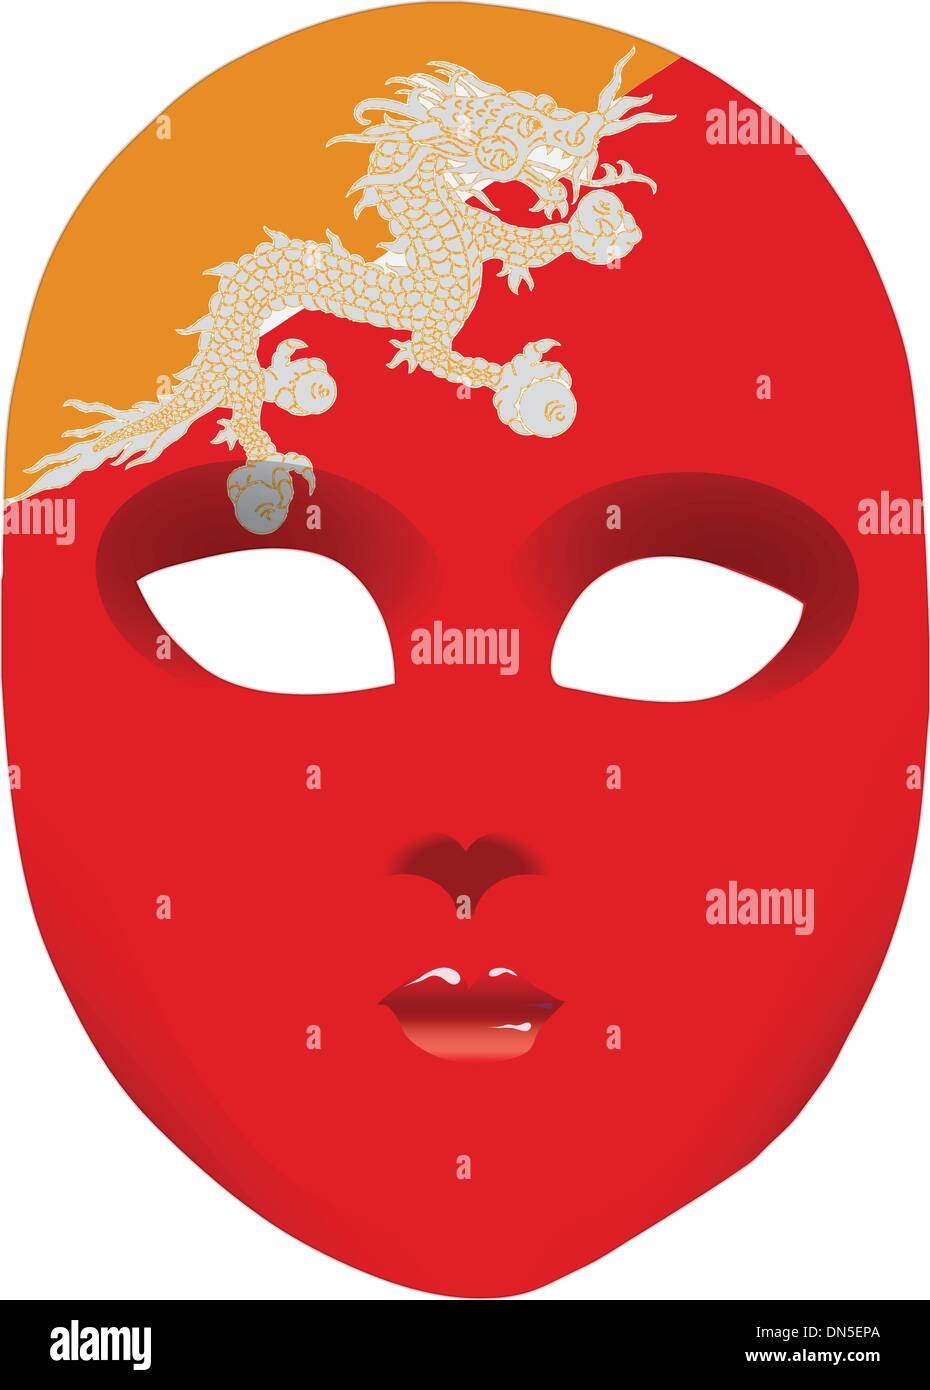 Flag of Bhutan on the mask - Stock Vector